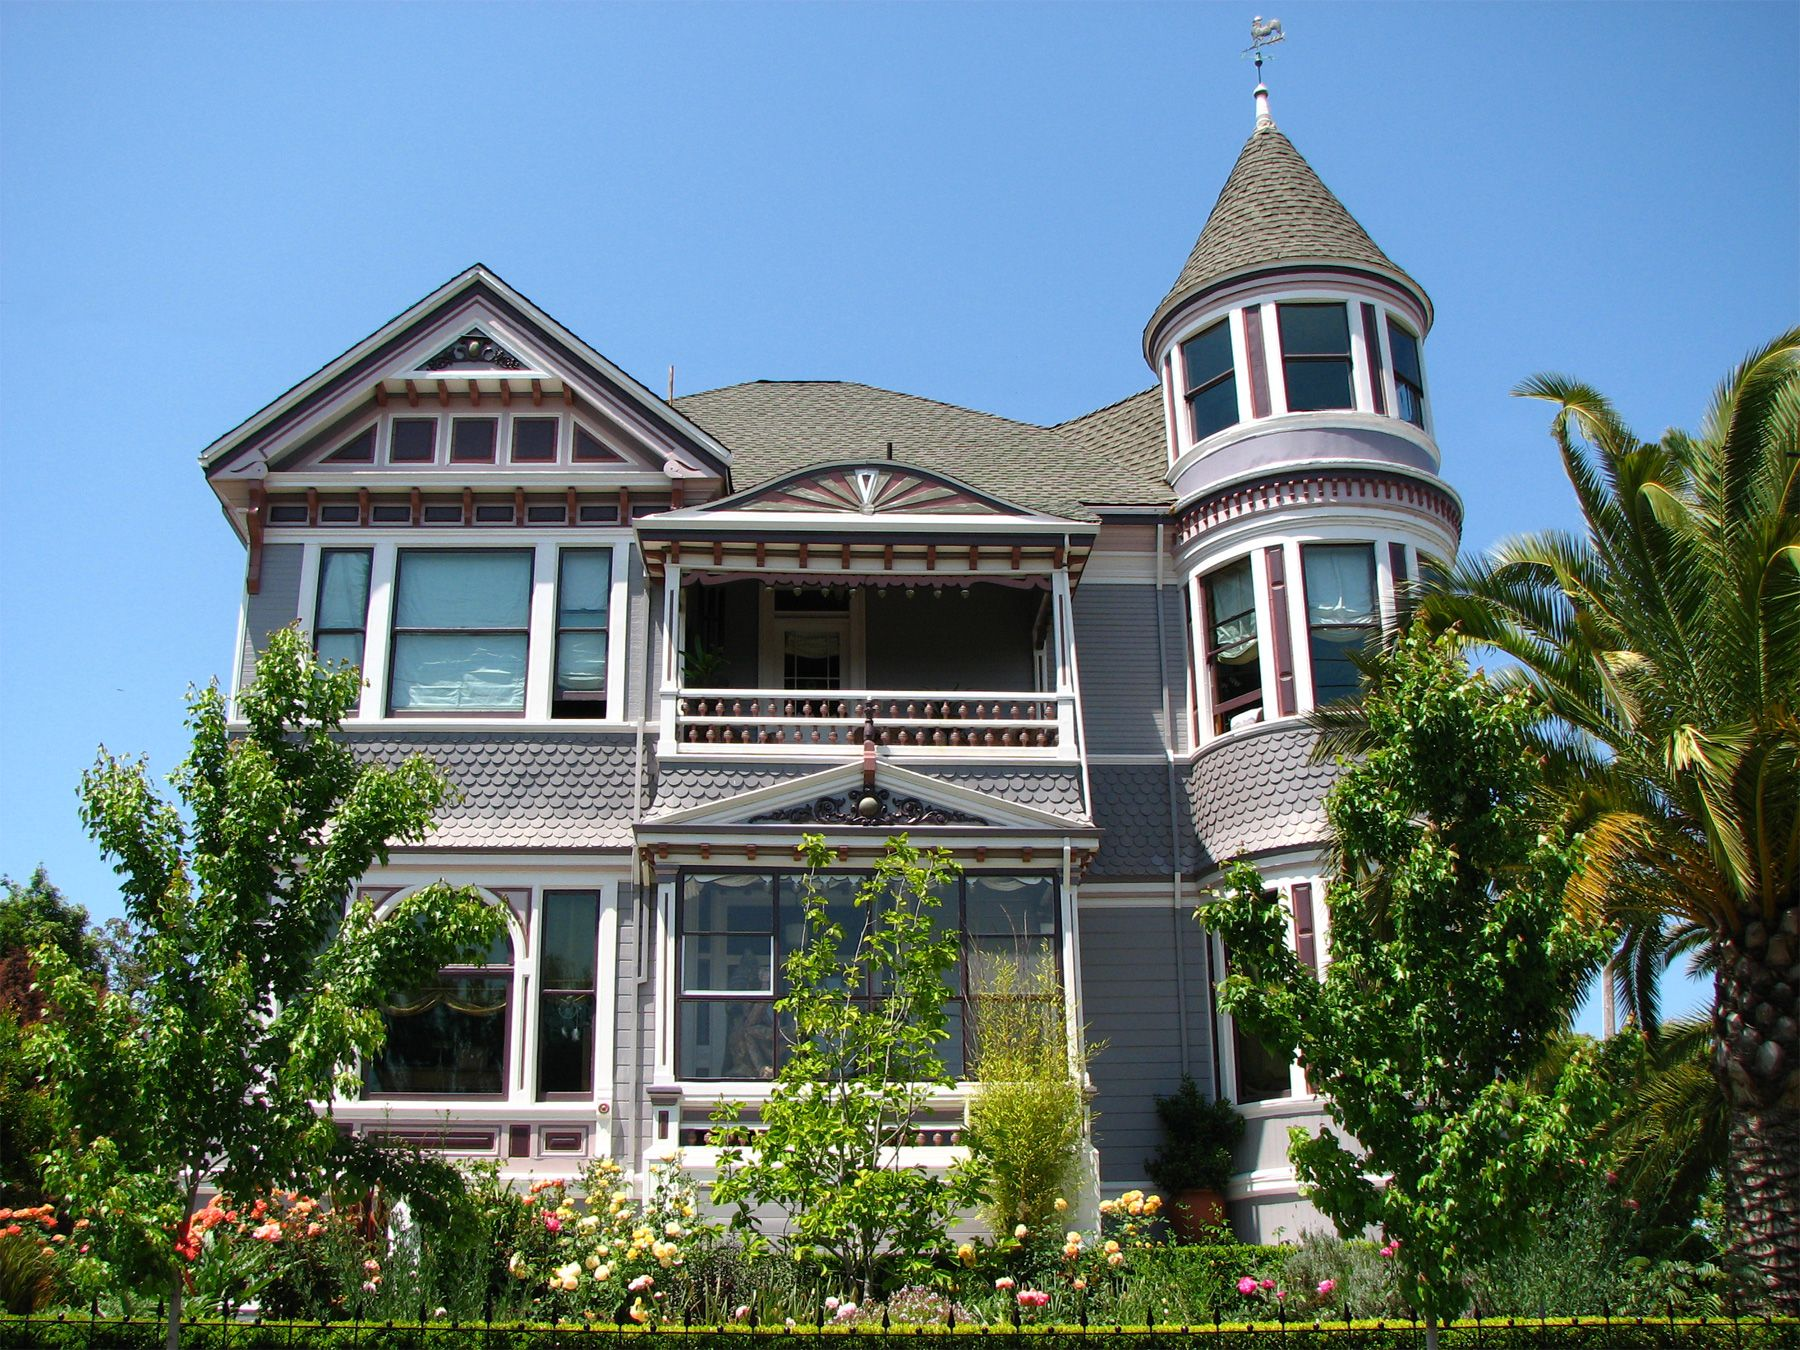 It Might Be Fun To Live In An Old Victorian Especially Since It S